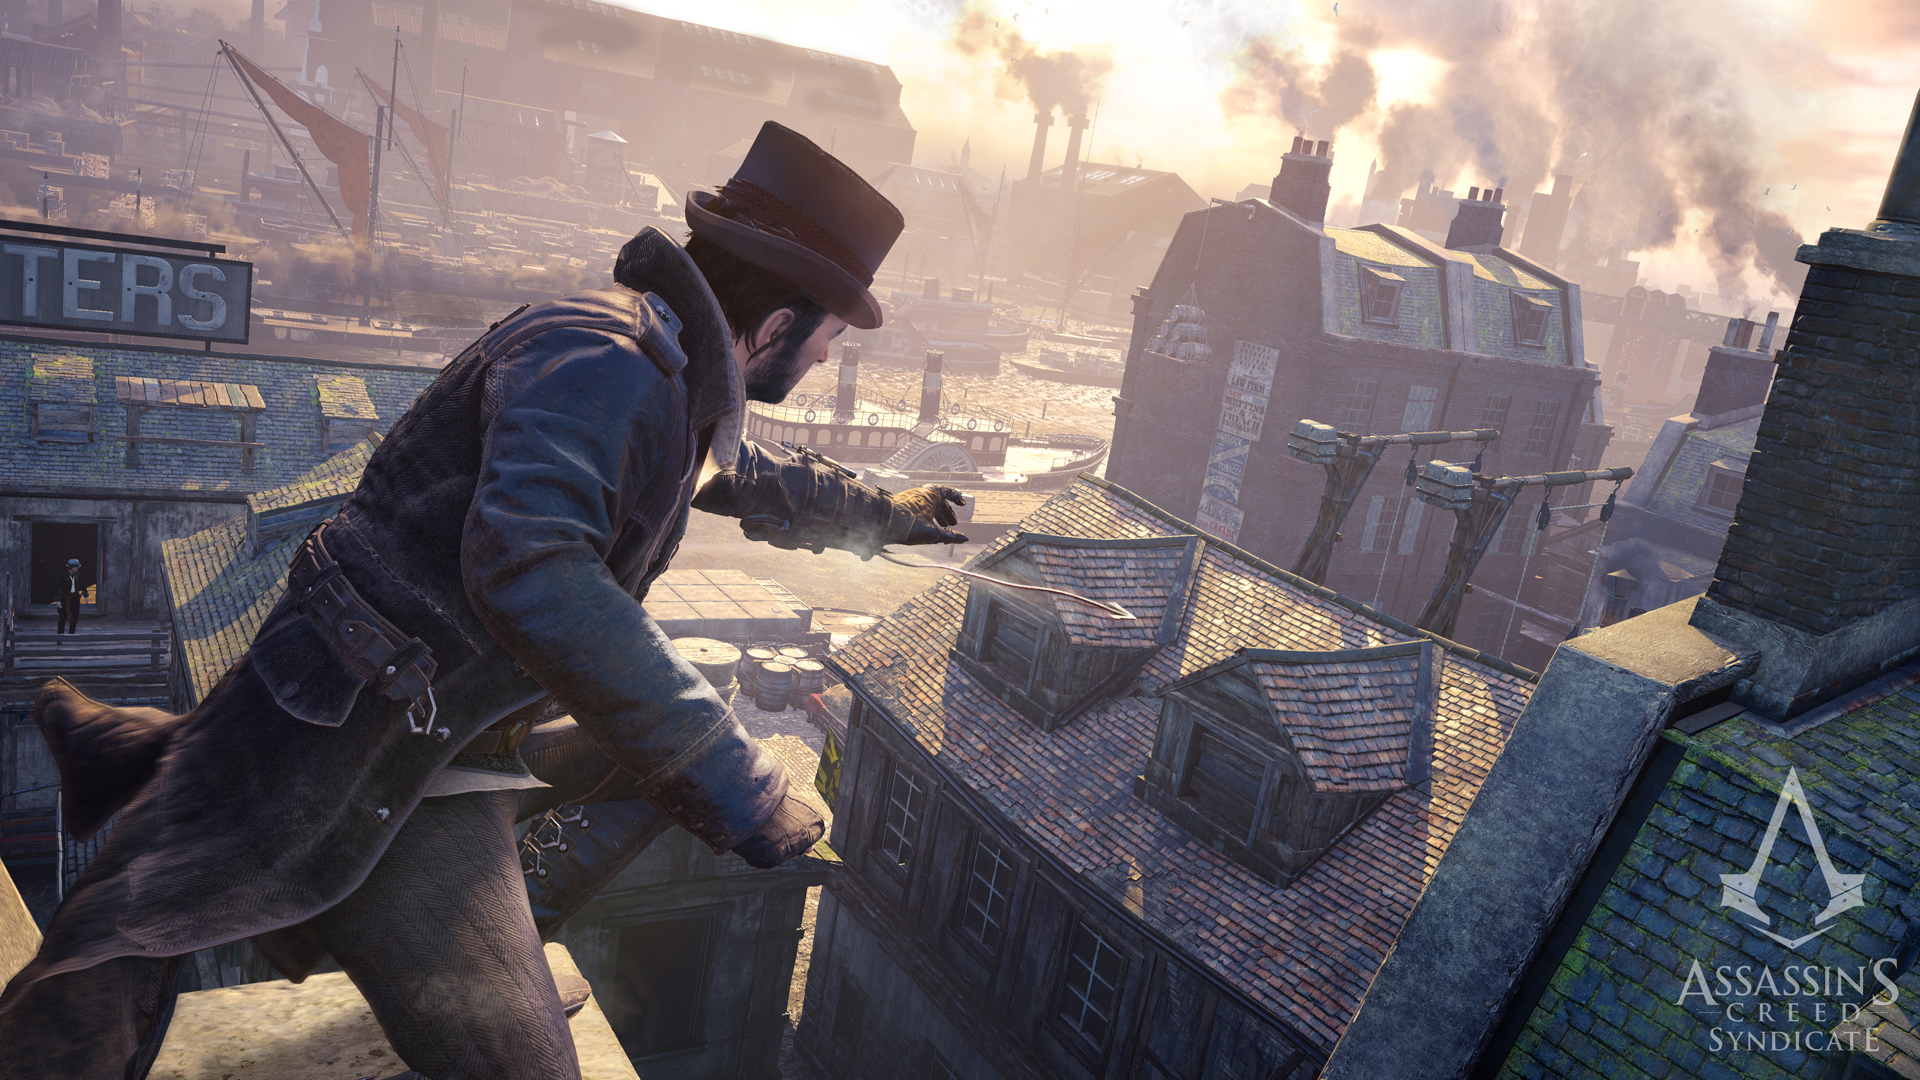 download assassin's creed syndicate gold special edition v1.5 loslees repack by corepack singlelink iso google fire drive gdrive direct link one ftp link magnet extra tracker torrent leech thepiratebay kickass torrents leeching